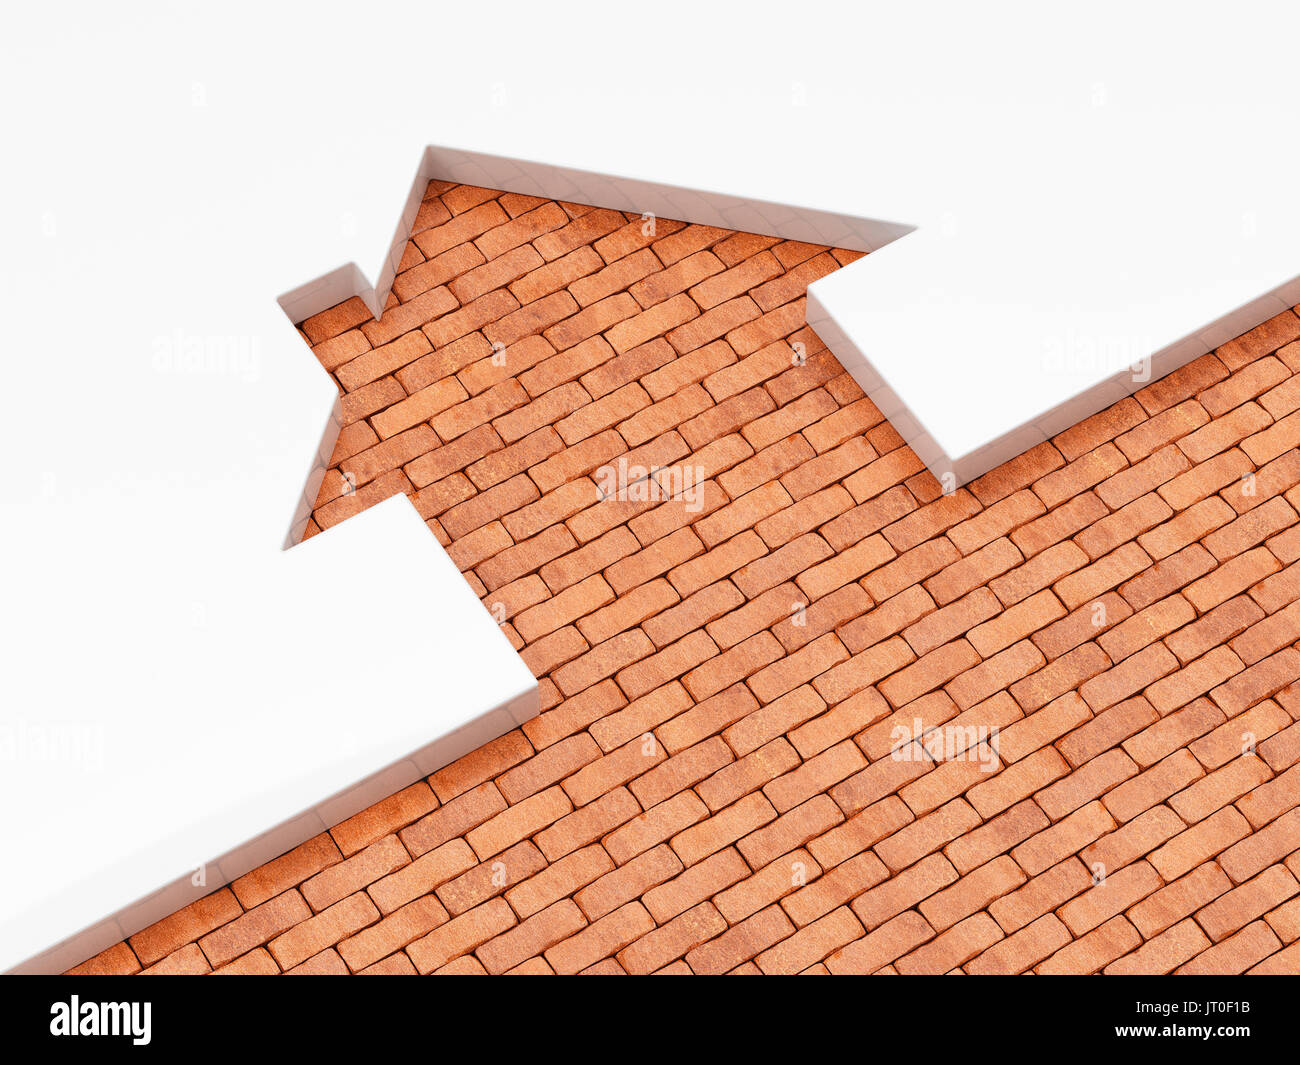 House shape brick metaphor. Home concept, real estate architecture business idea icon. 3d rendering illustration - Stock Image